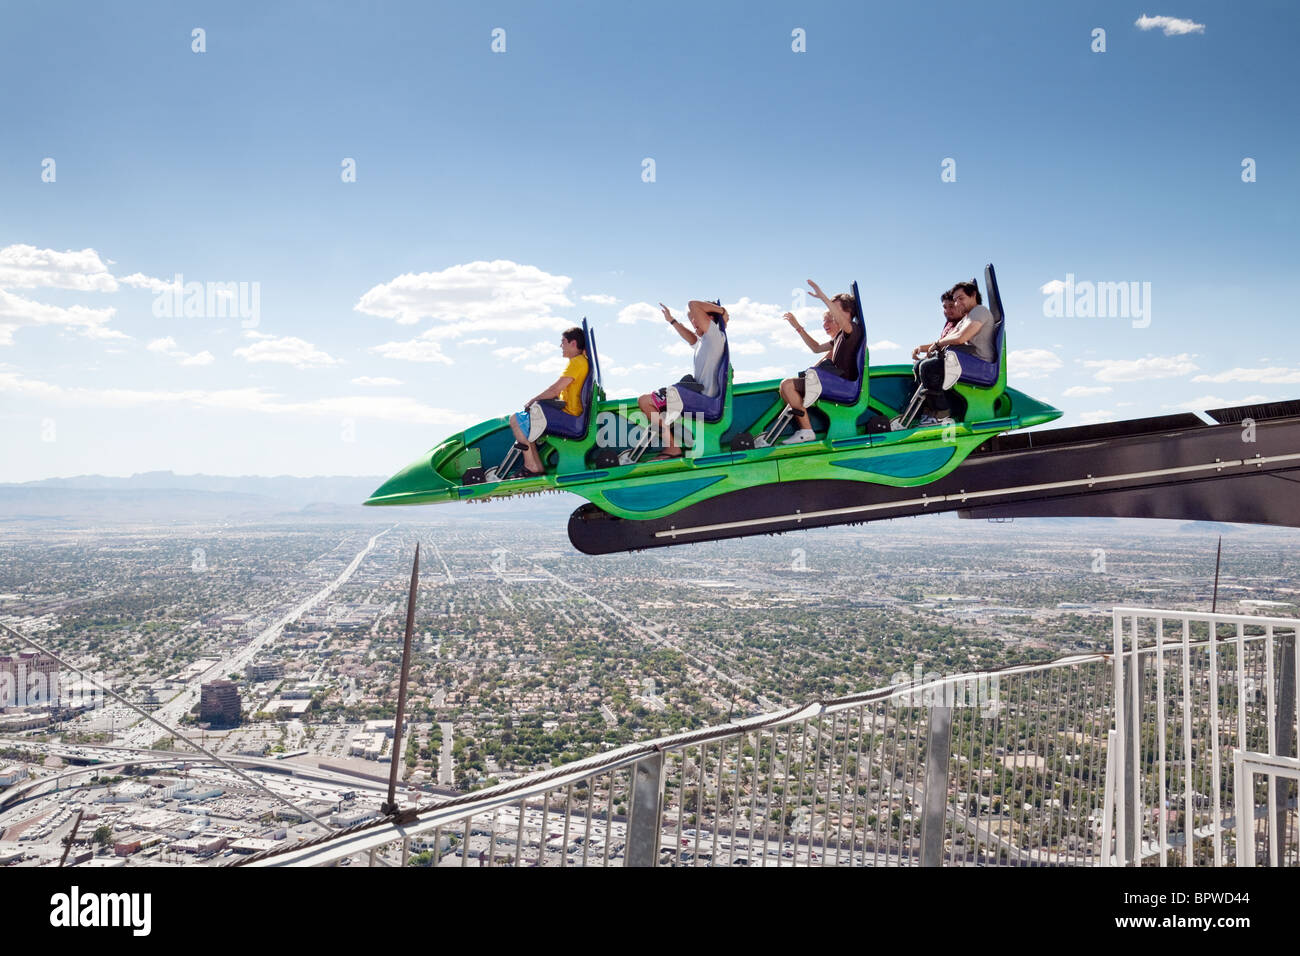 people enjoying the X-scream ride at the top of the Stratosphere hotel, Las Vegas - Stock Image